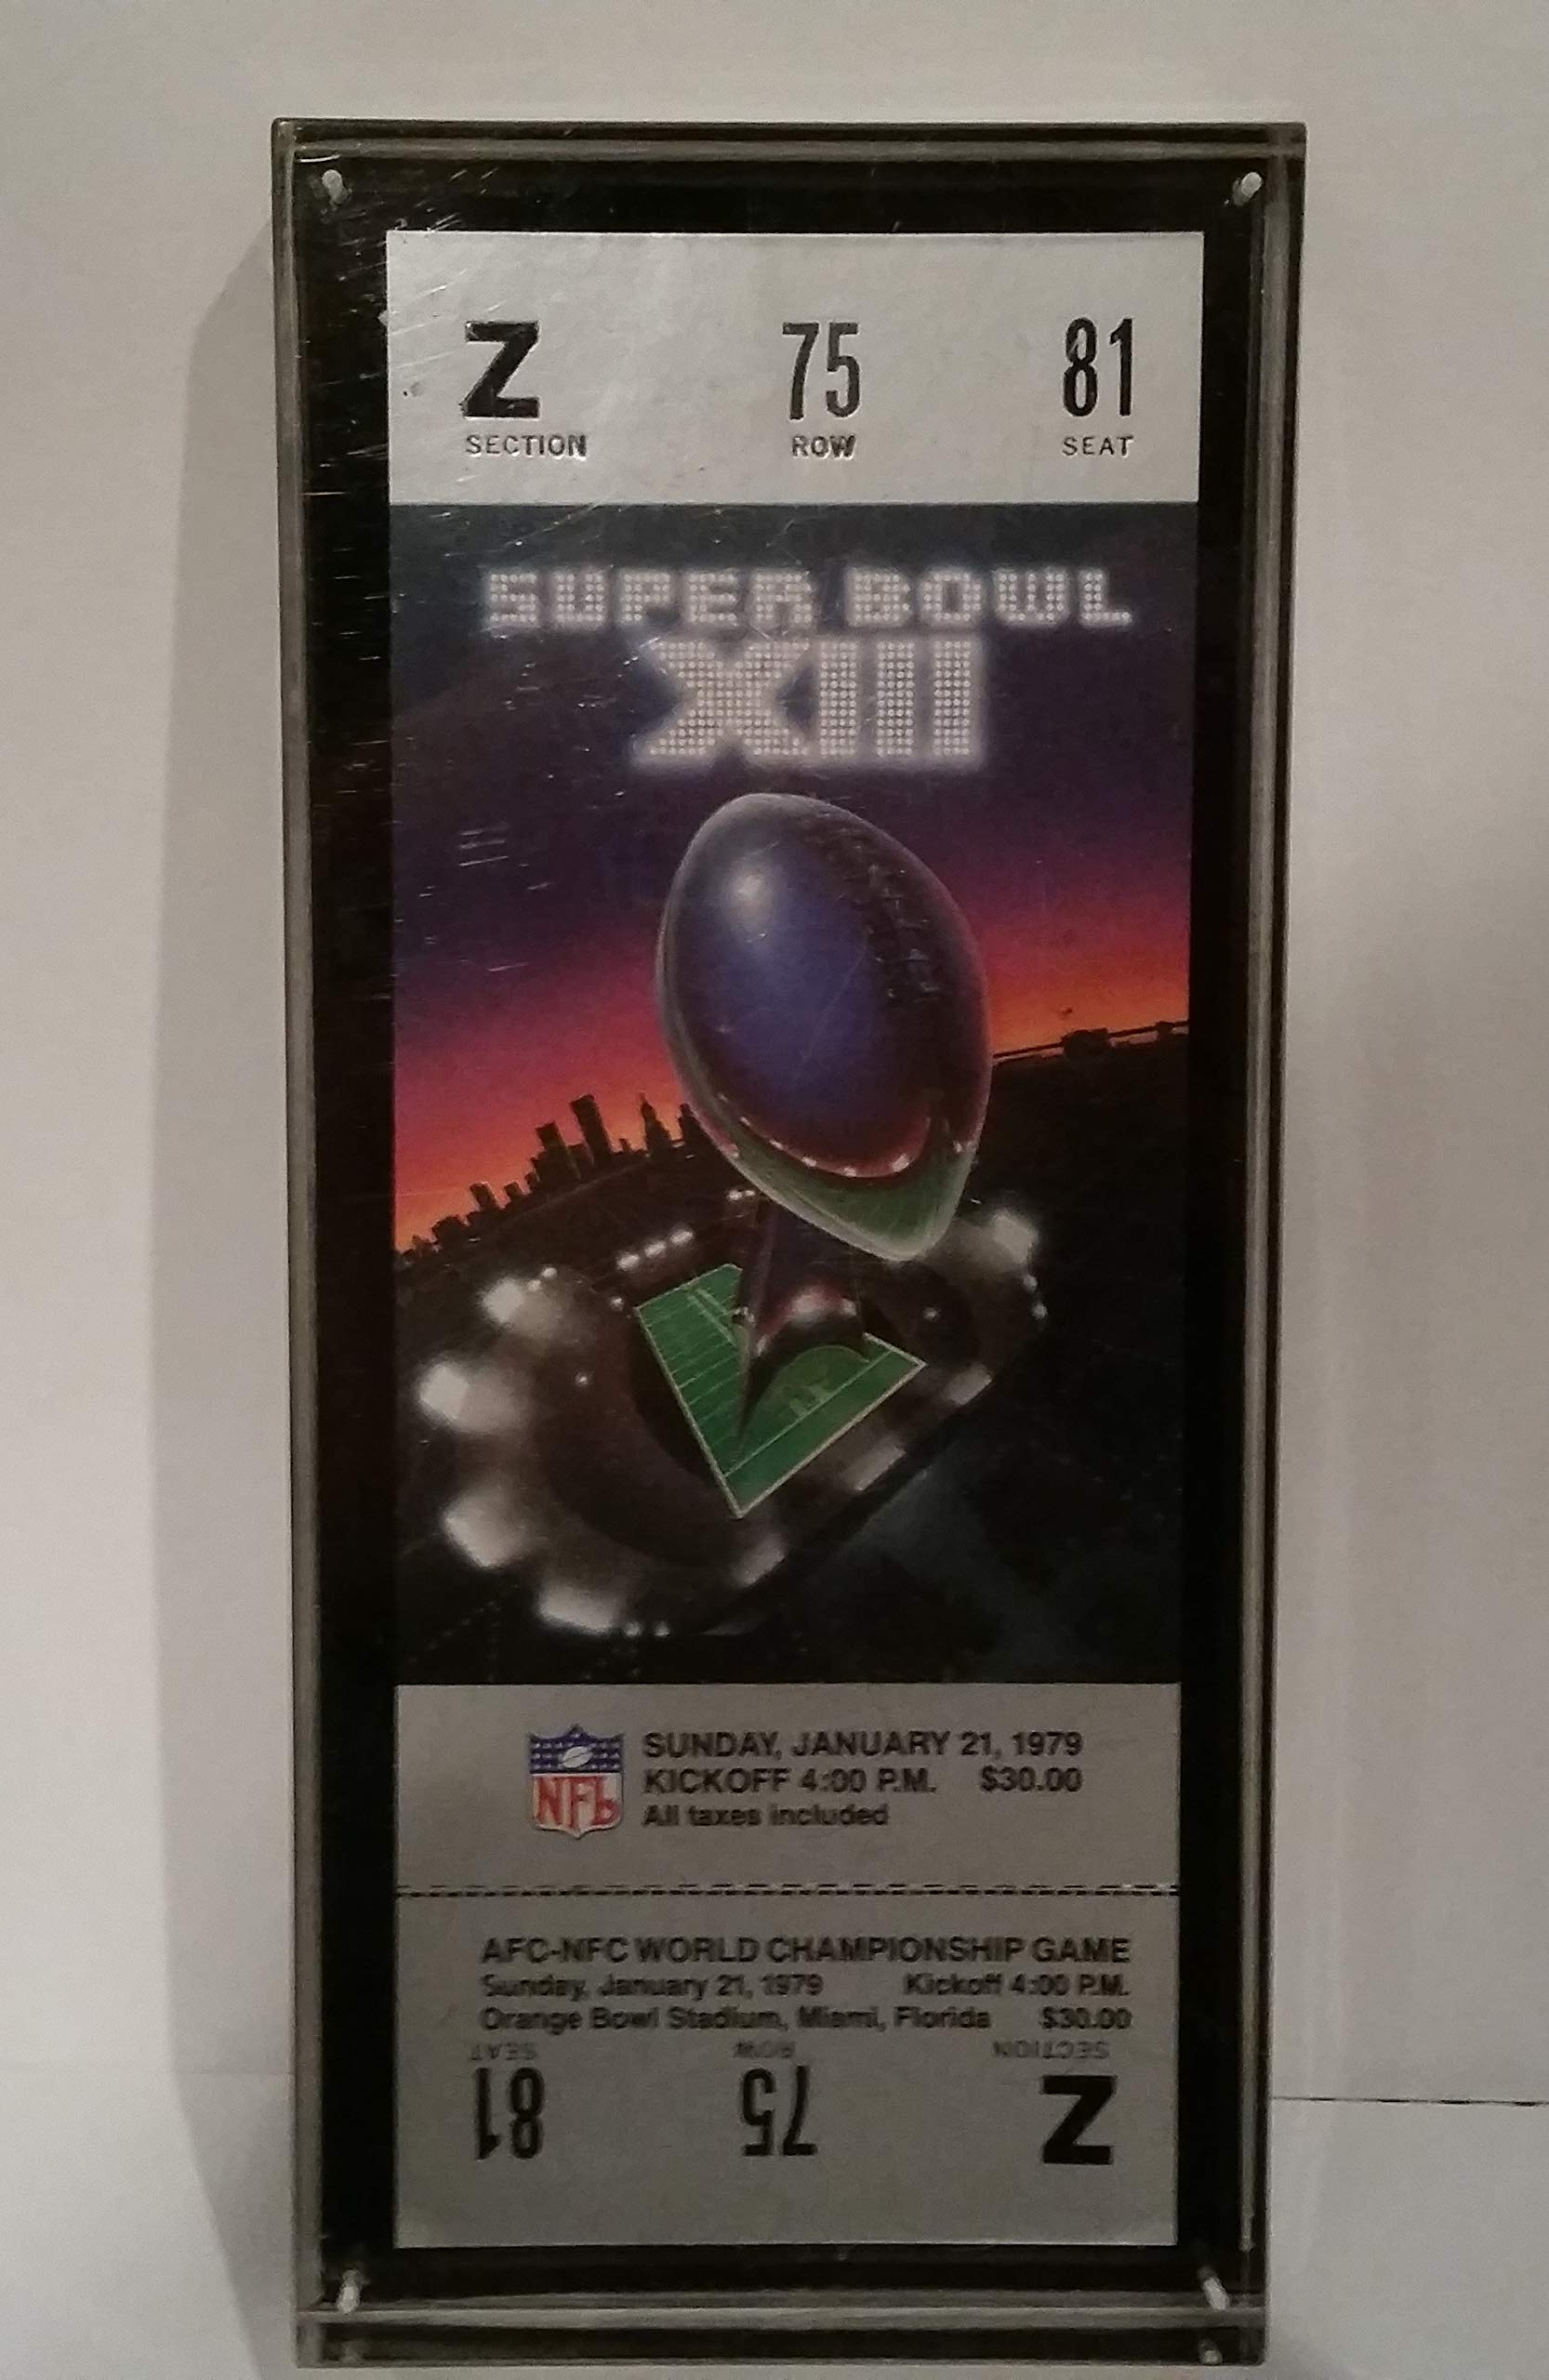 PAPER WEIGHT ENCLOSED SUPERBOWL XIII PROOF TICKET STEELERS VS. COWBOYS